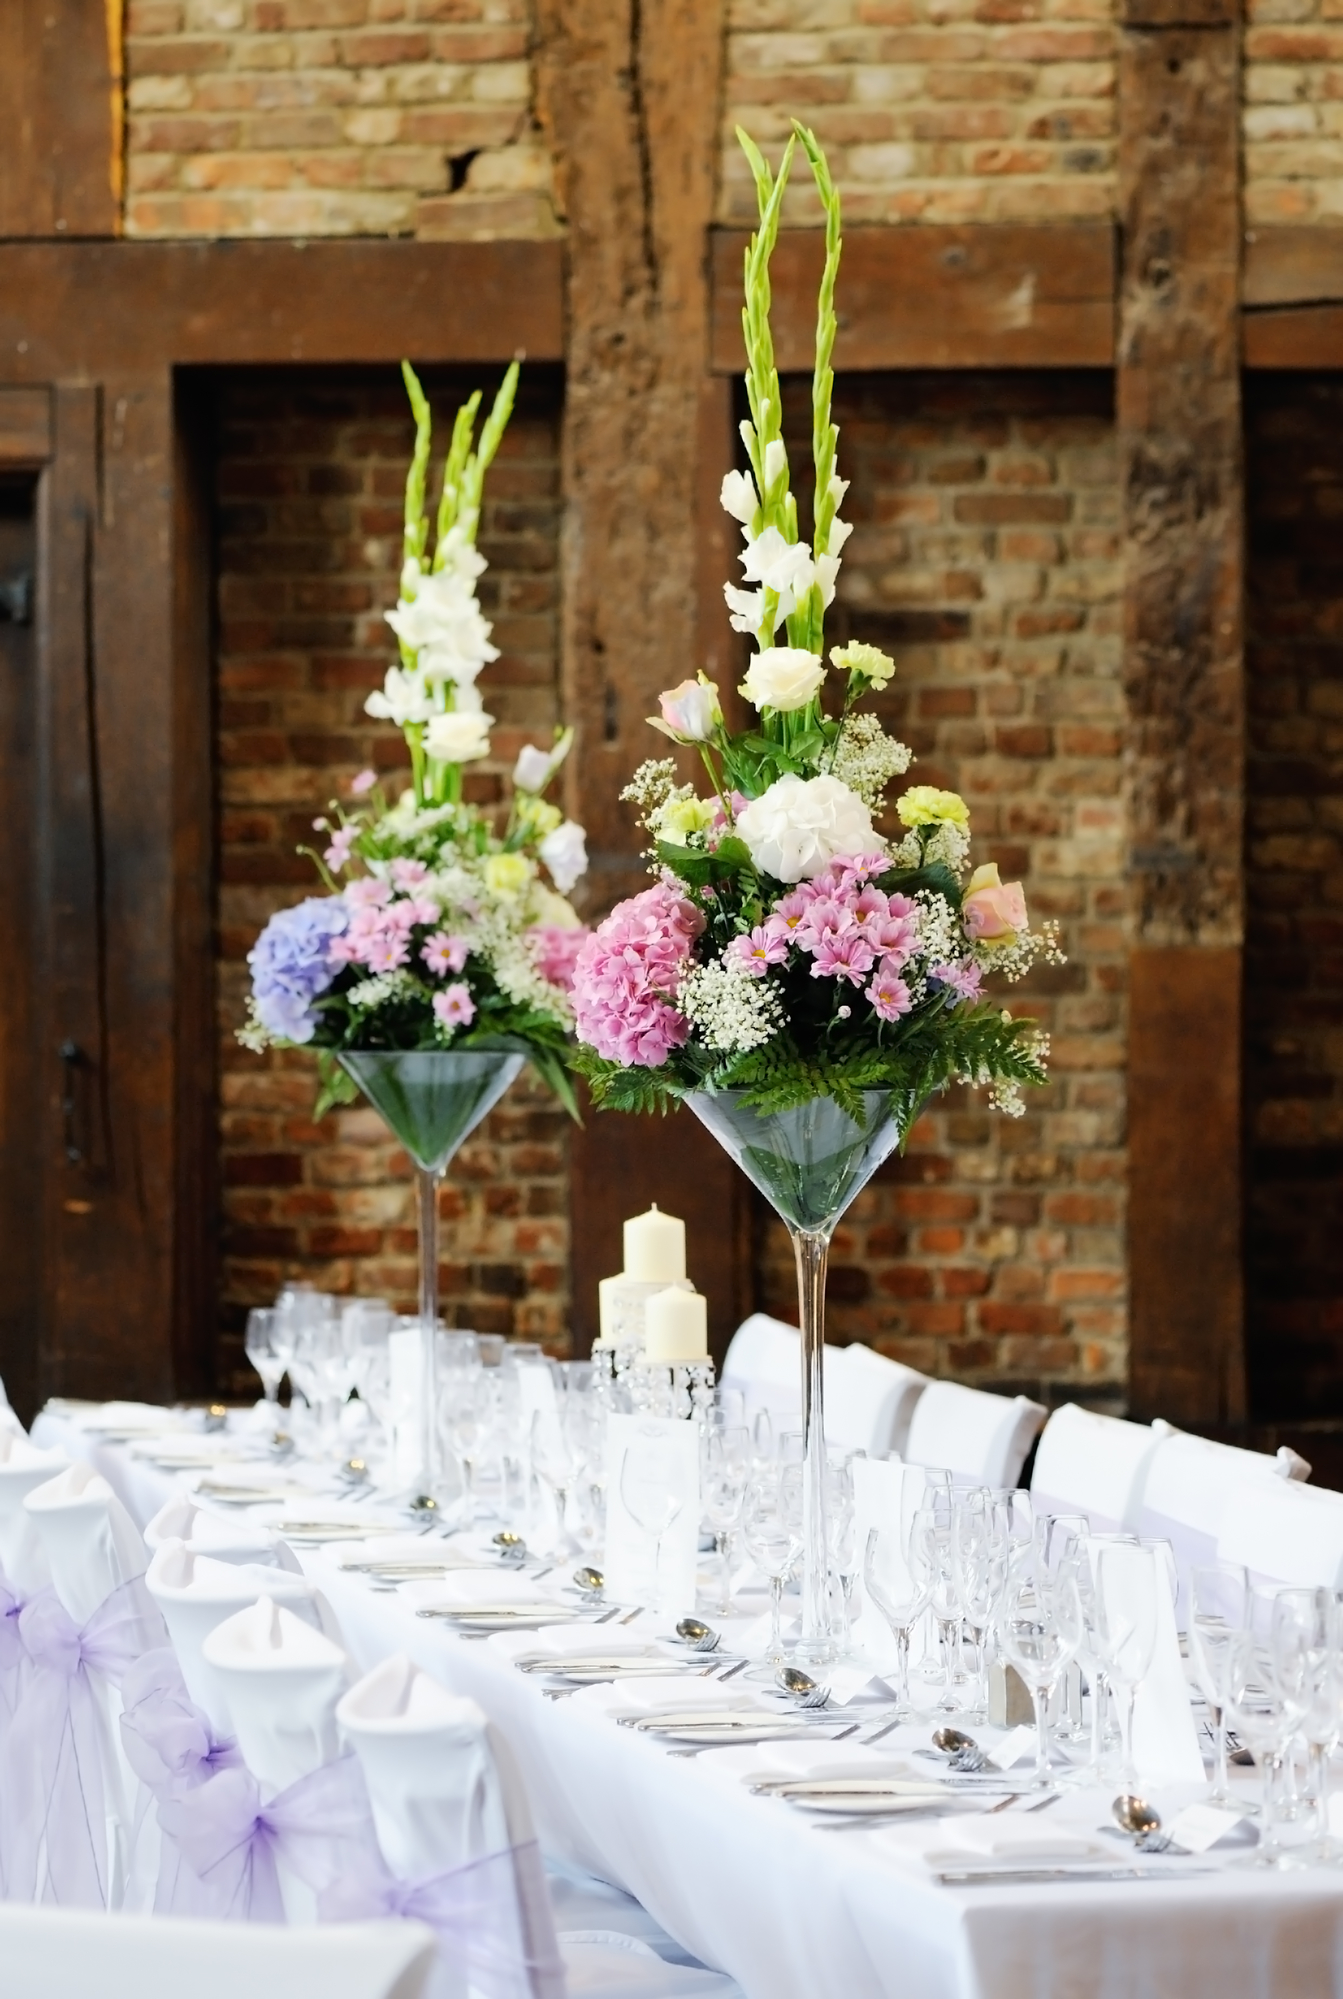 4 Tips On Creating The Ideal Wedding Centerpieces